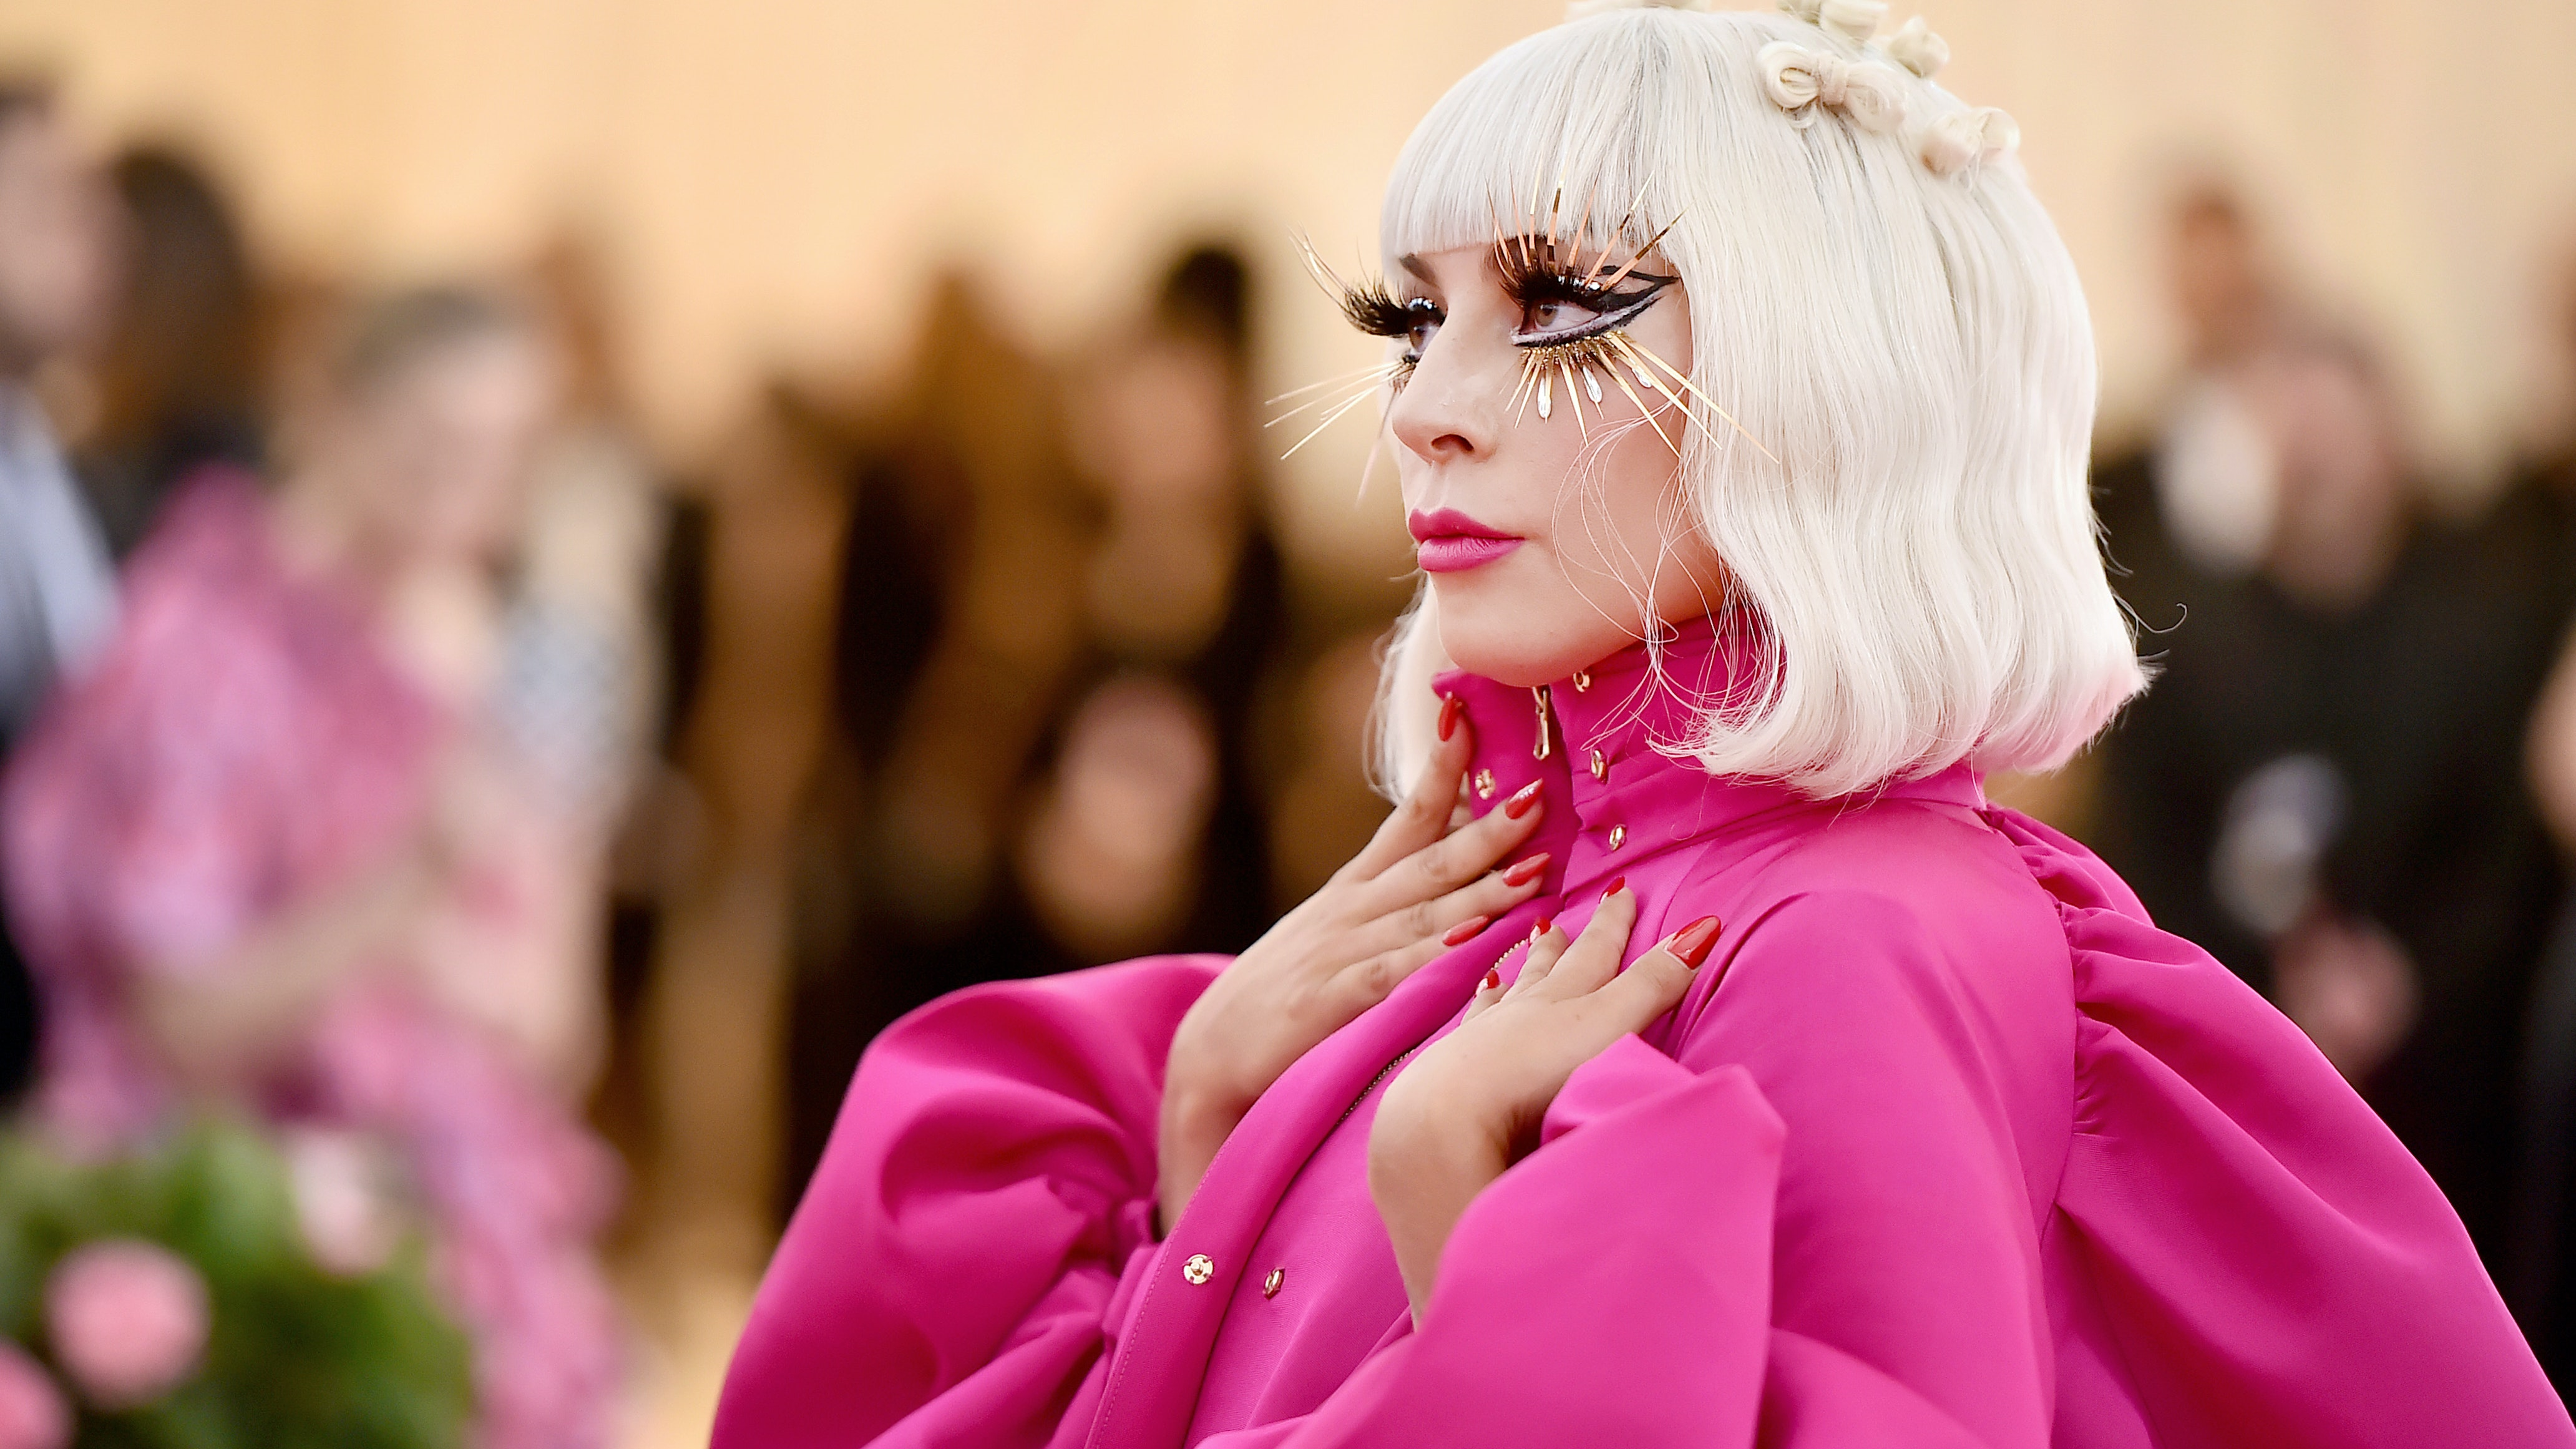 """Lady Gaga Just Upgraded Her Iconic """"Hair Bow"""" For the Met Gala Red Carpet"""